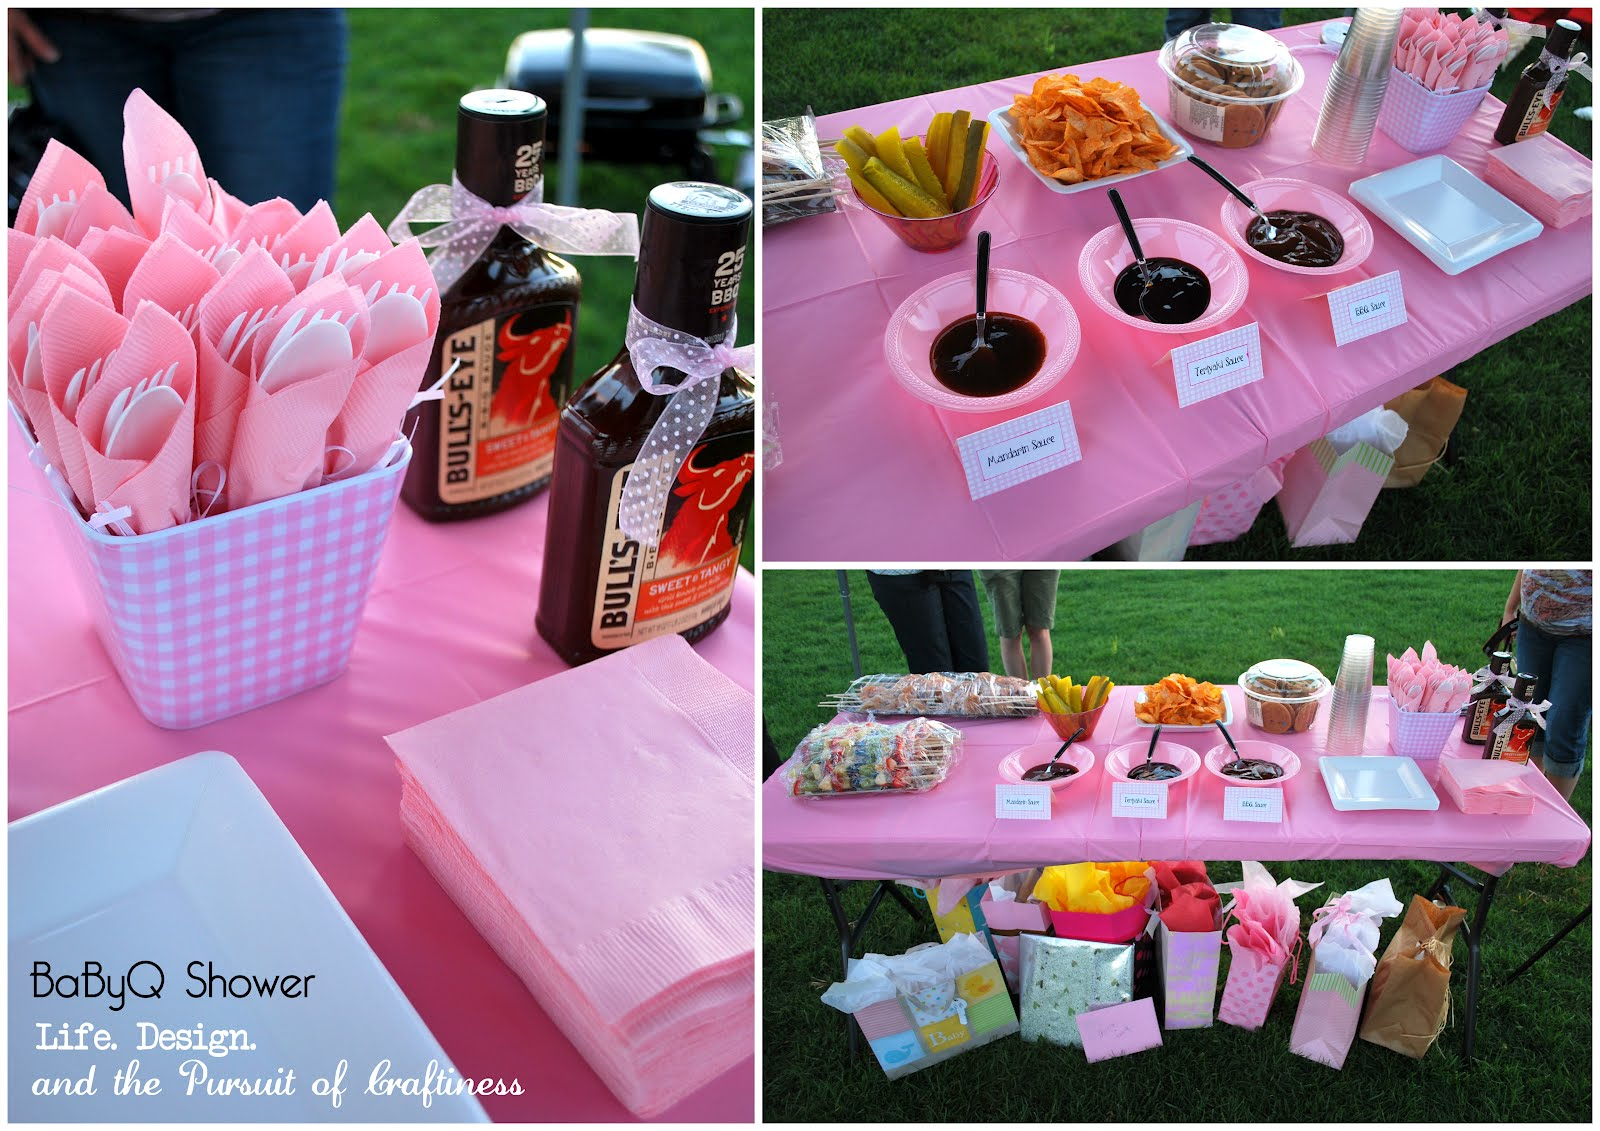 Life design and the pursuit of craftiness baby bbq baby for Baby shower bbq decoration ideas